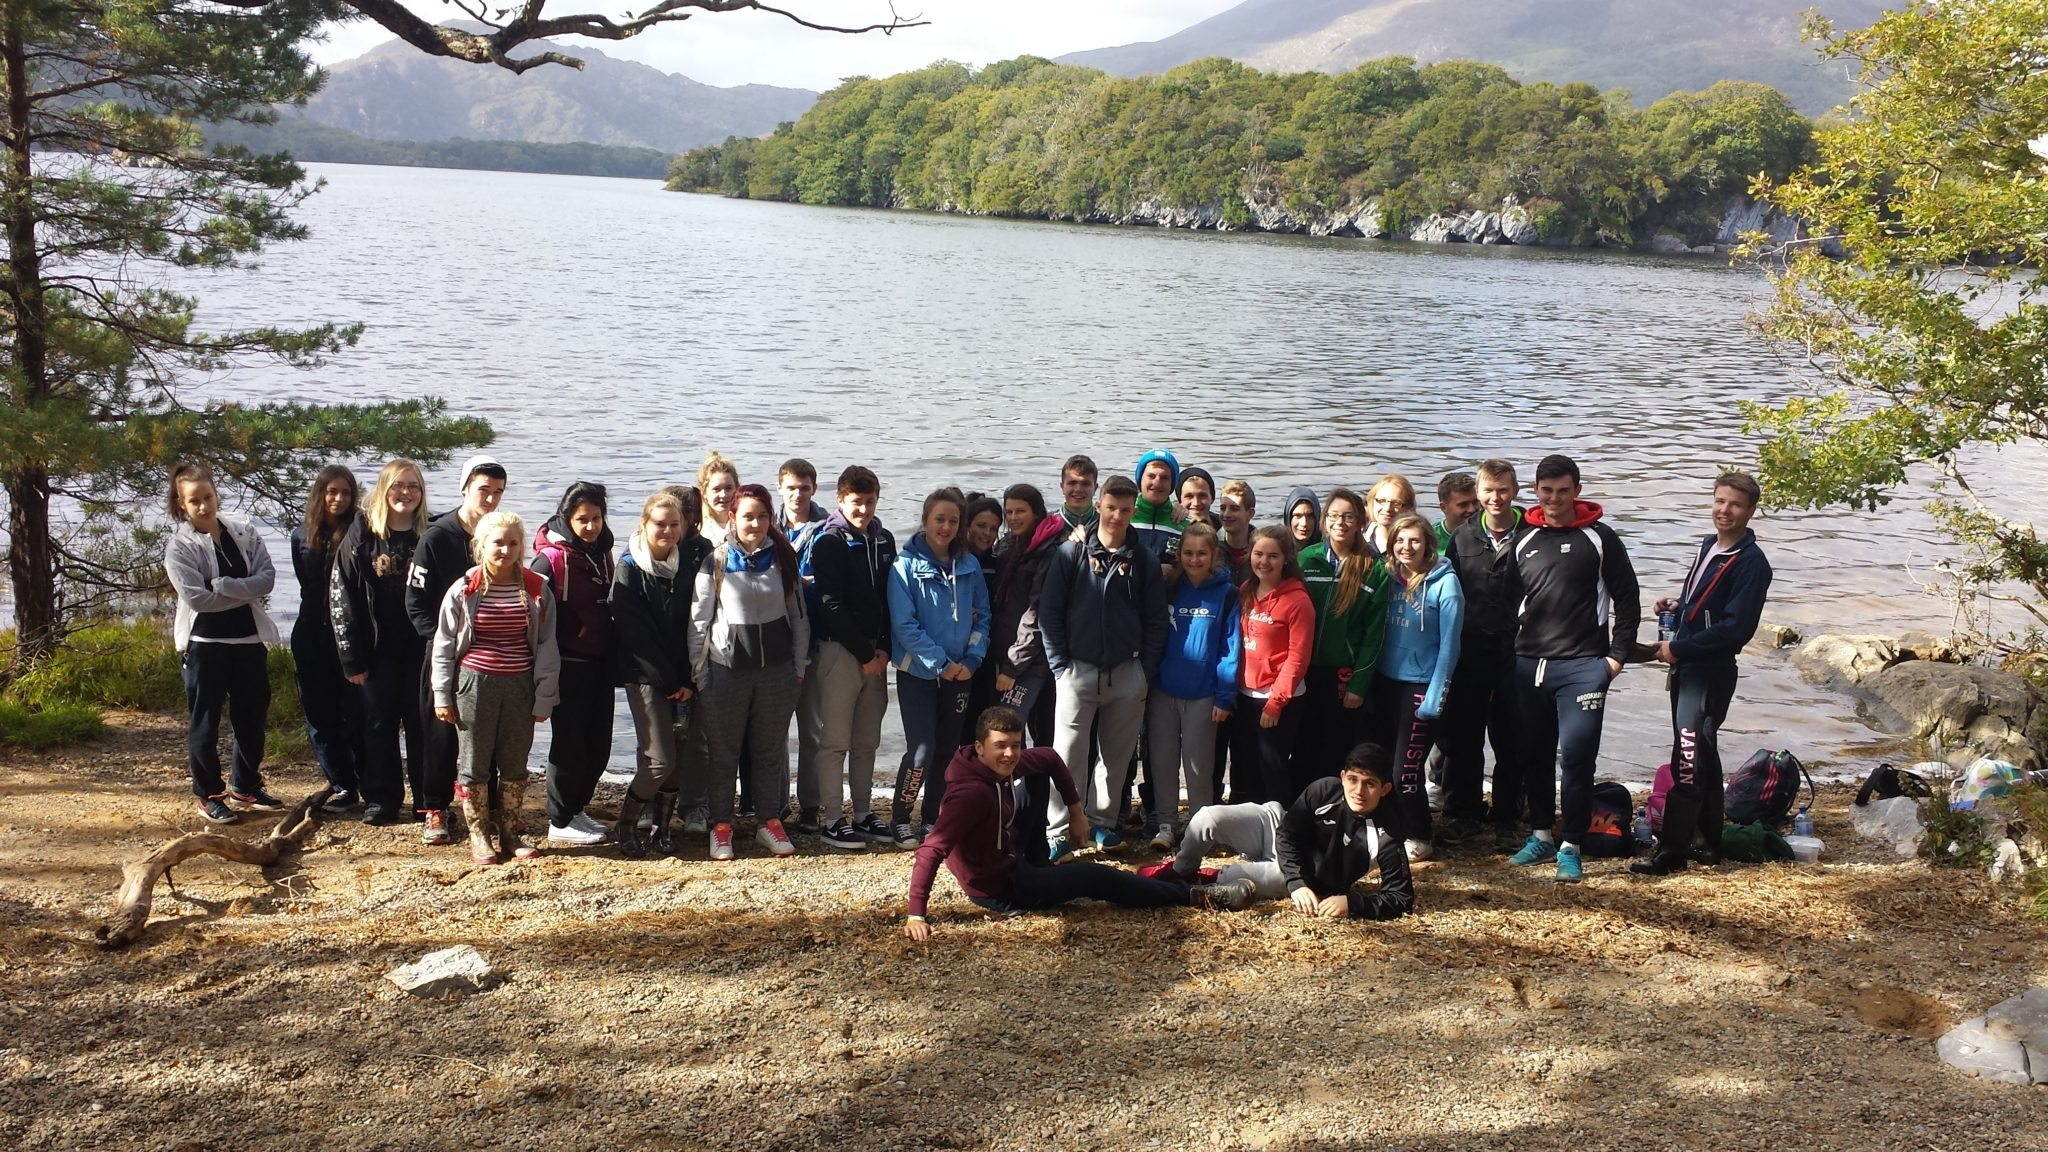 October 2015: Desmond College Leaving Certificate Biology Students in the Beautiful Killarney National Park